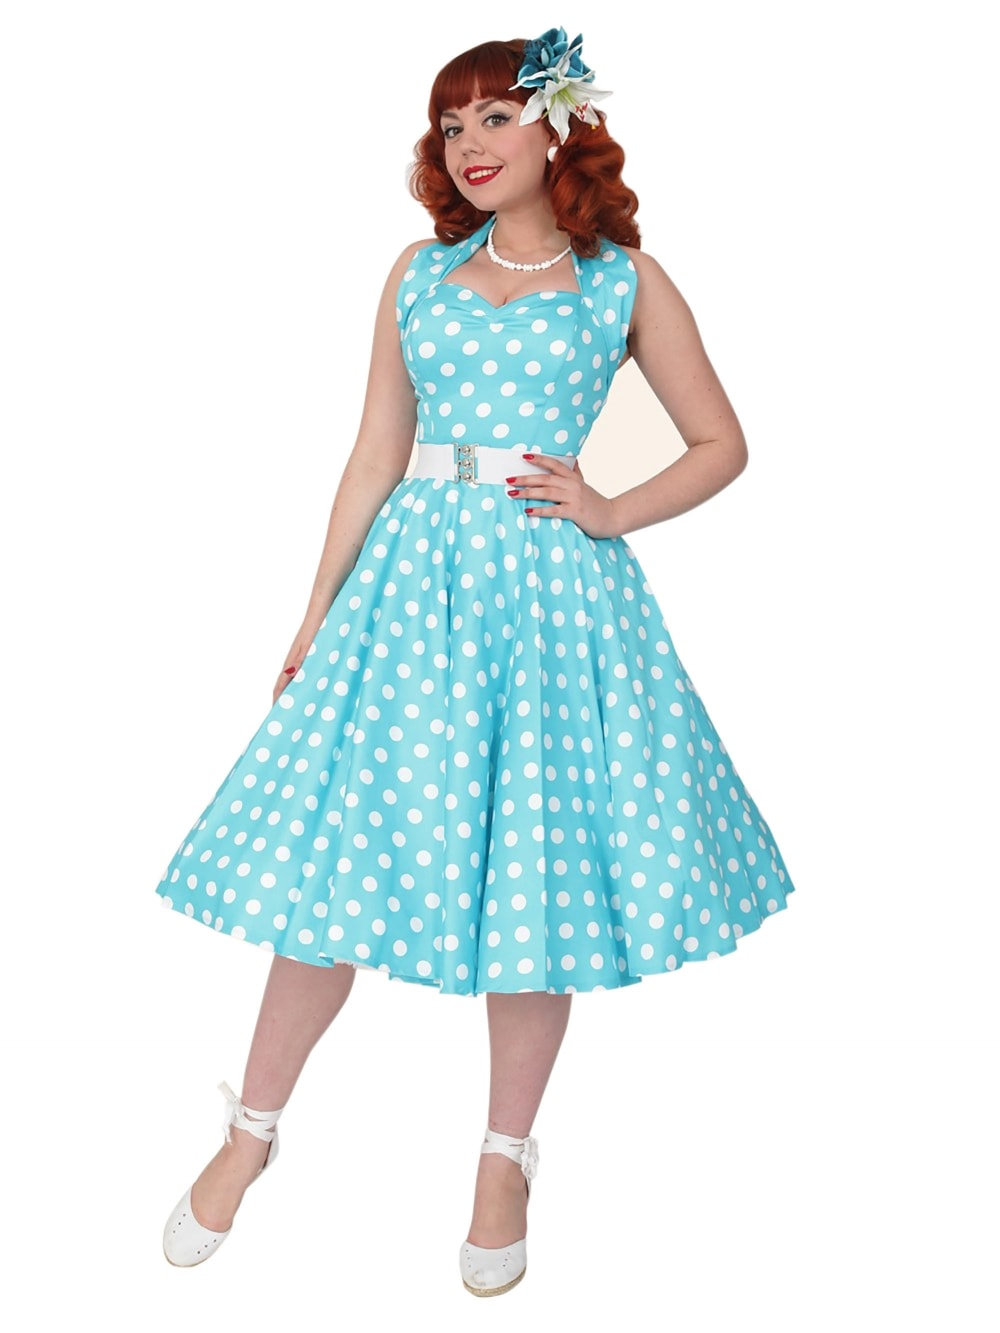 323763d75c69 1950s Halterneck Turquoise Polkadot Dress from Vivien of Holloway